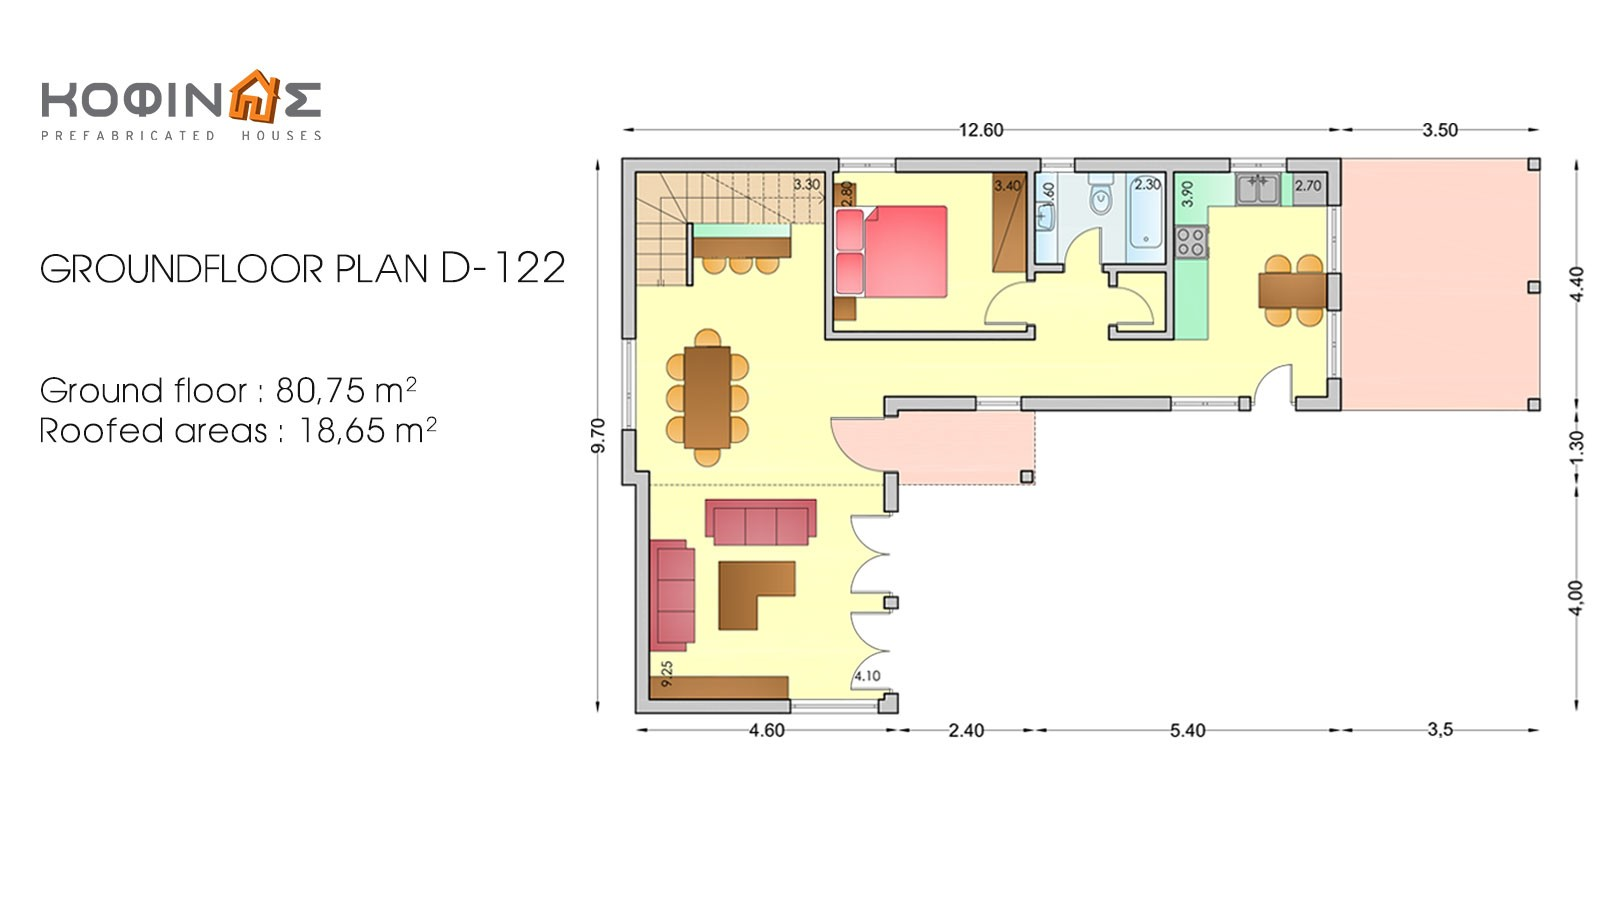 2-story house D-122, total surface of 122,6 m²